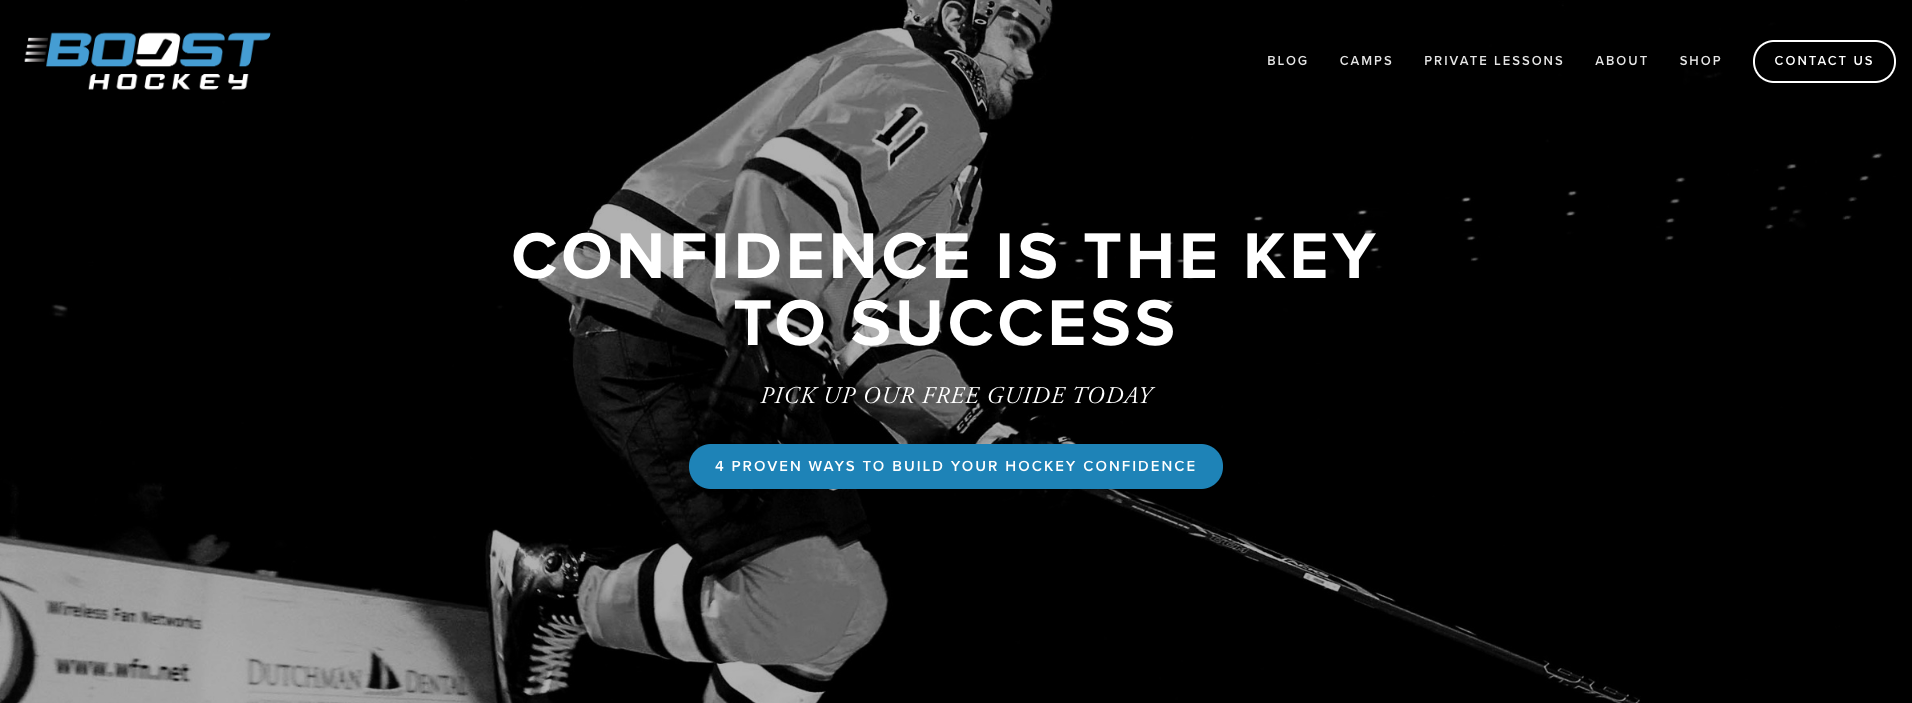 Boost Hockey website redesign using Squarespace.